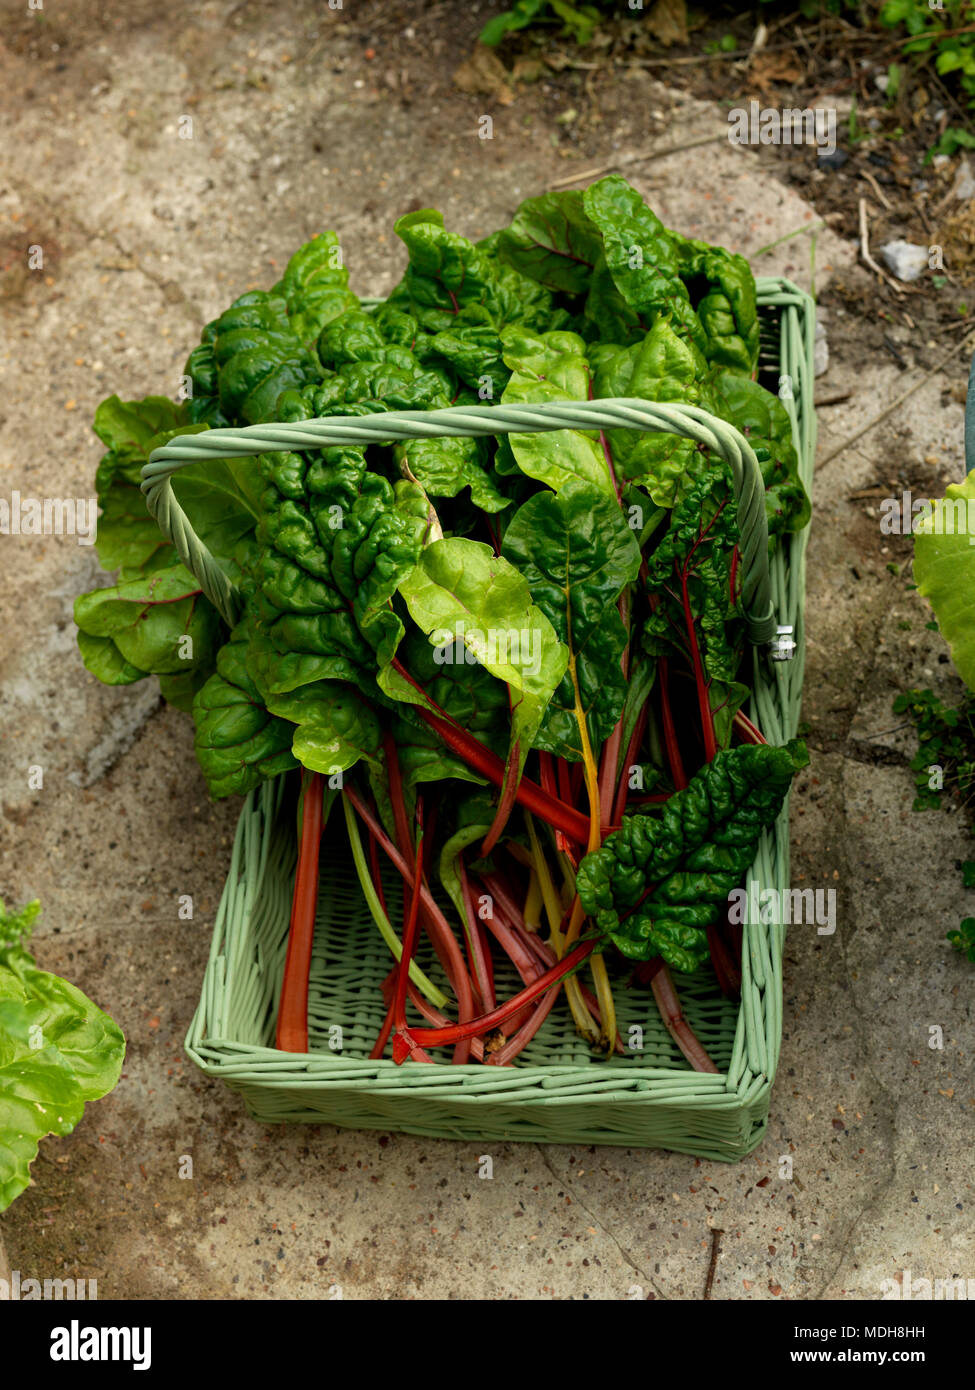 Swiss Chard Spinach Type Vegetable with Red and Yellow Stalks Beta Cicla From The Beet Family In A Trug On A Bench - Stock Image